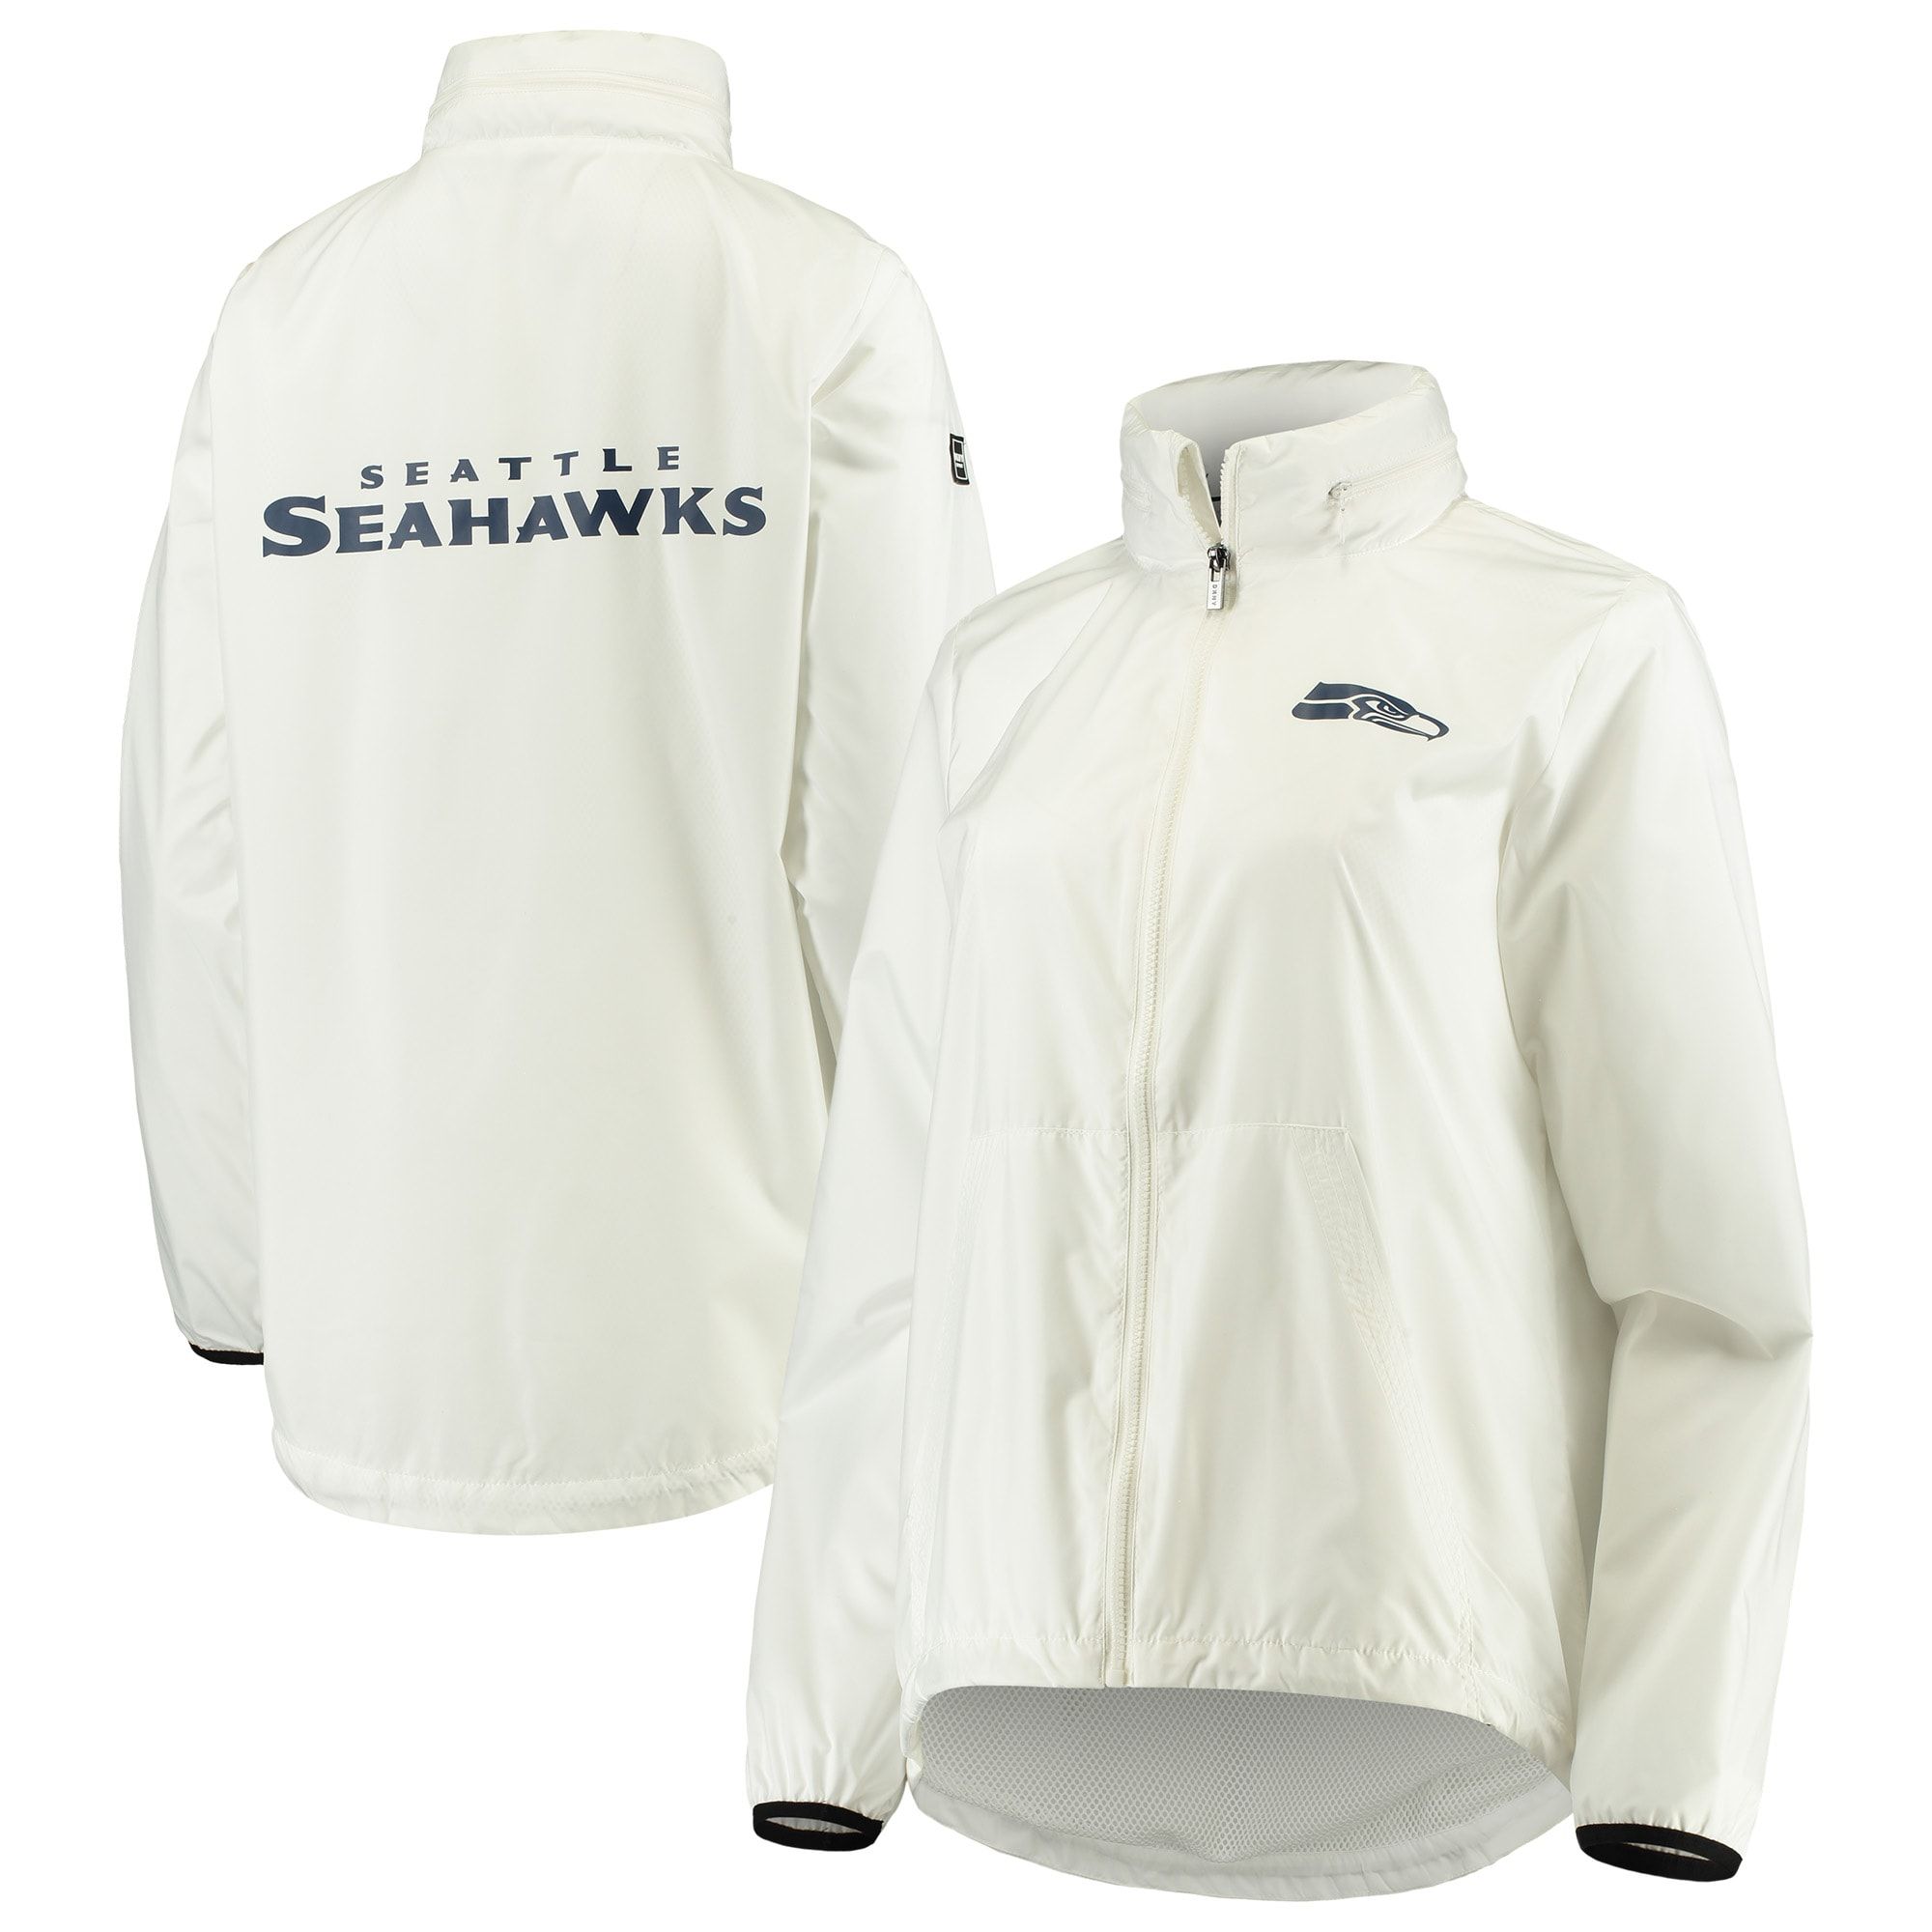 Seattle Seahawks DKNY Sport Women's Stadium Full-Zip Jacket - White